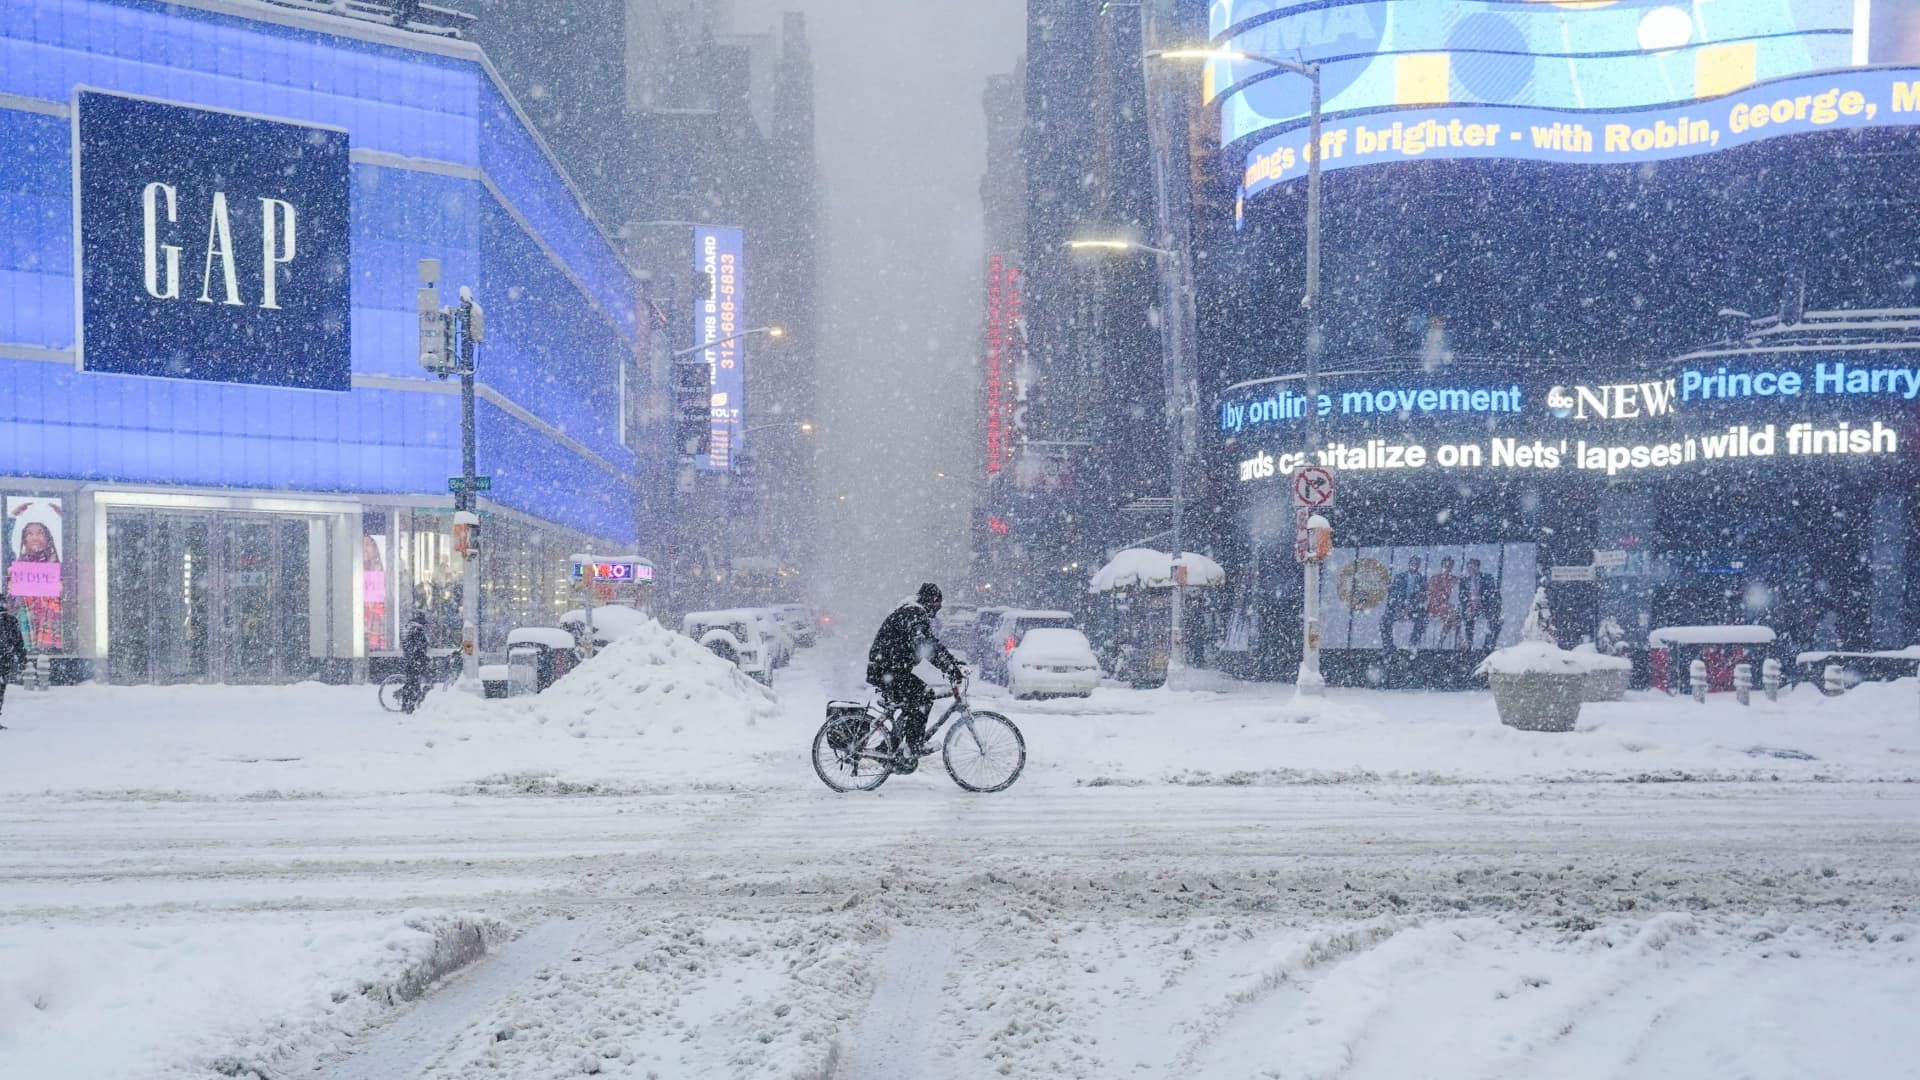 A person cycles through the Times Square during a snow storm, amid the coronavirus disease (COVID-19) pandemic, in New York, February 1, 2021.